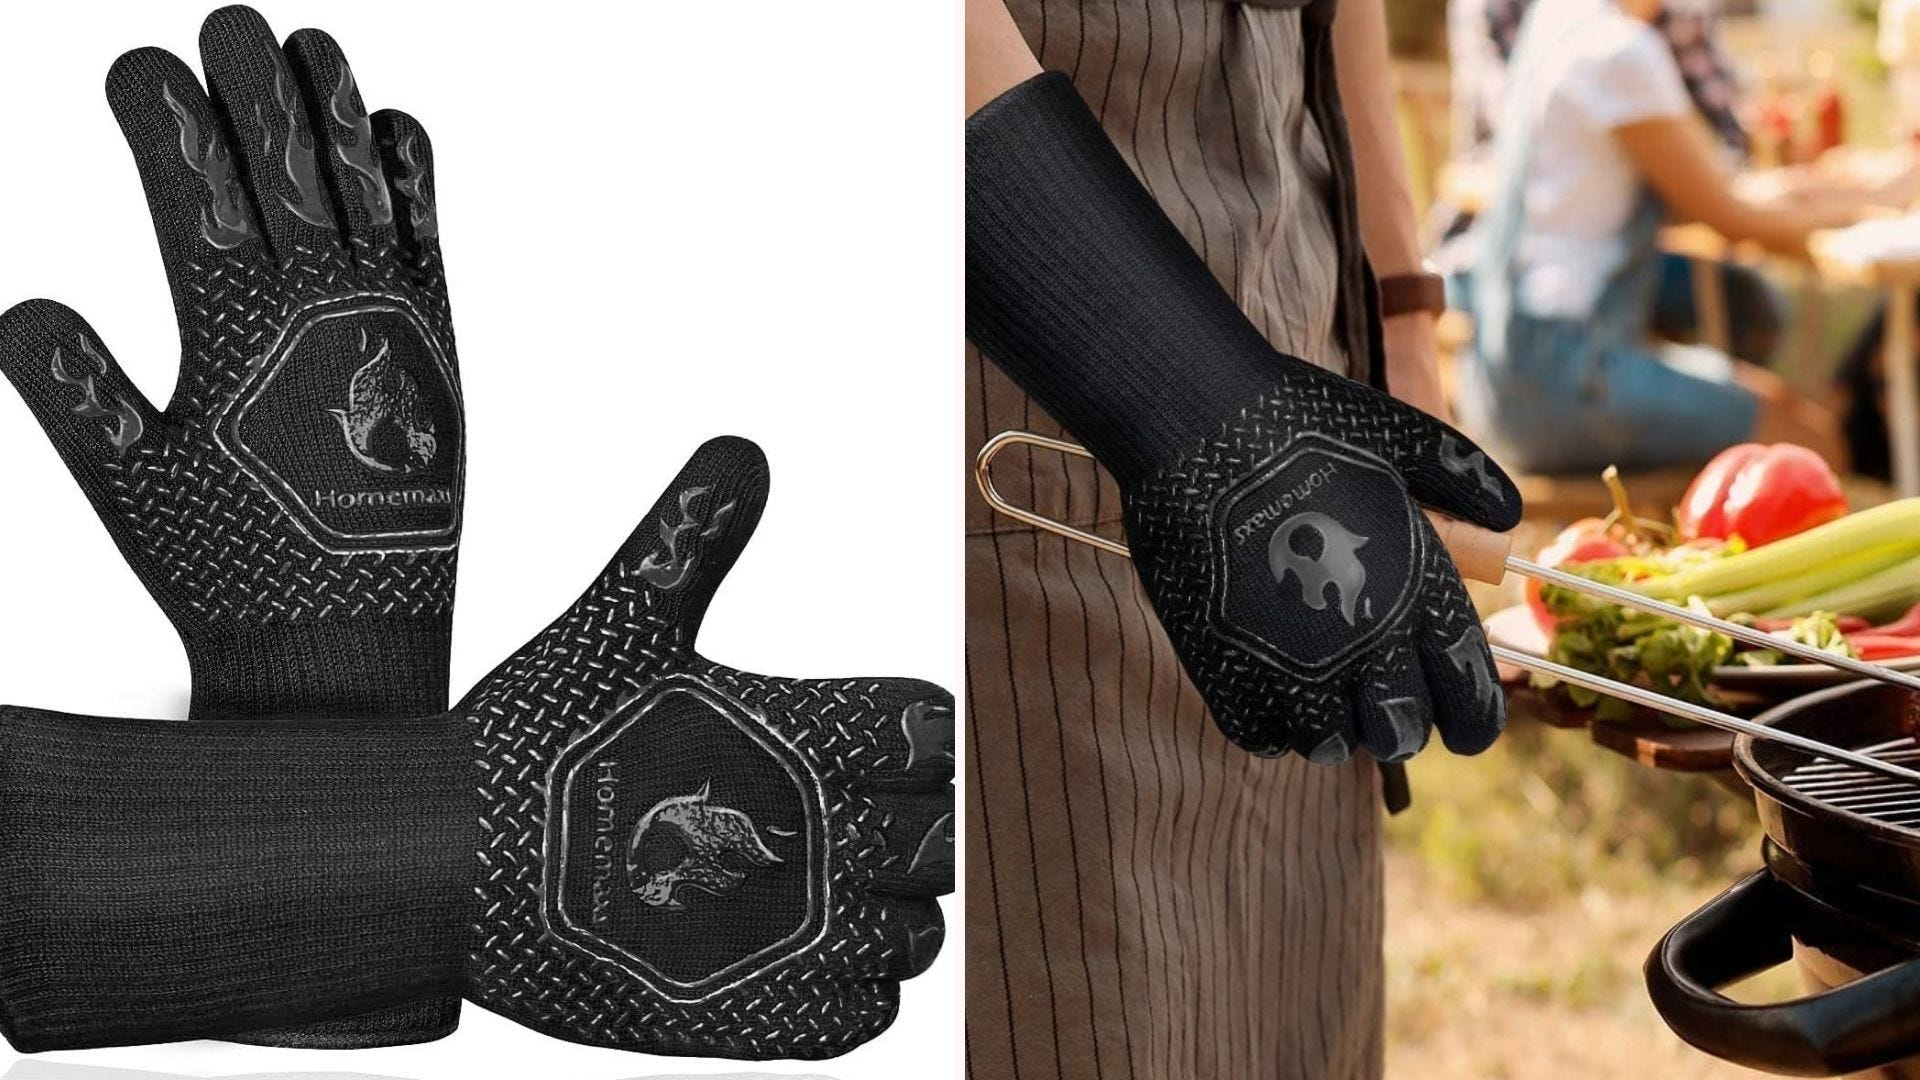 two black grilling gloves; one is shown on a hand of a person at the grill